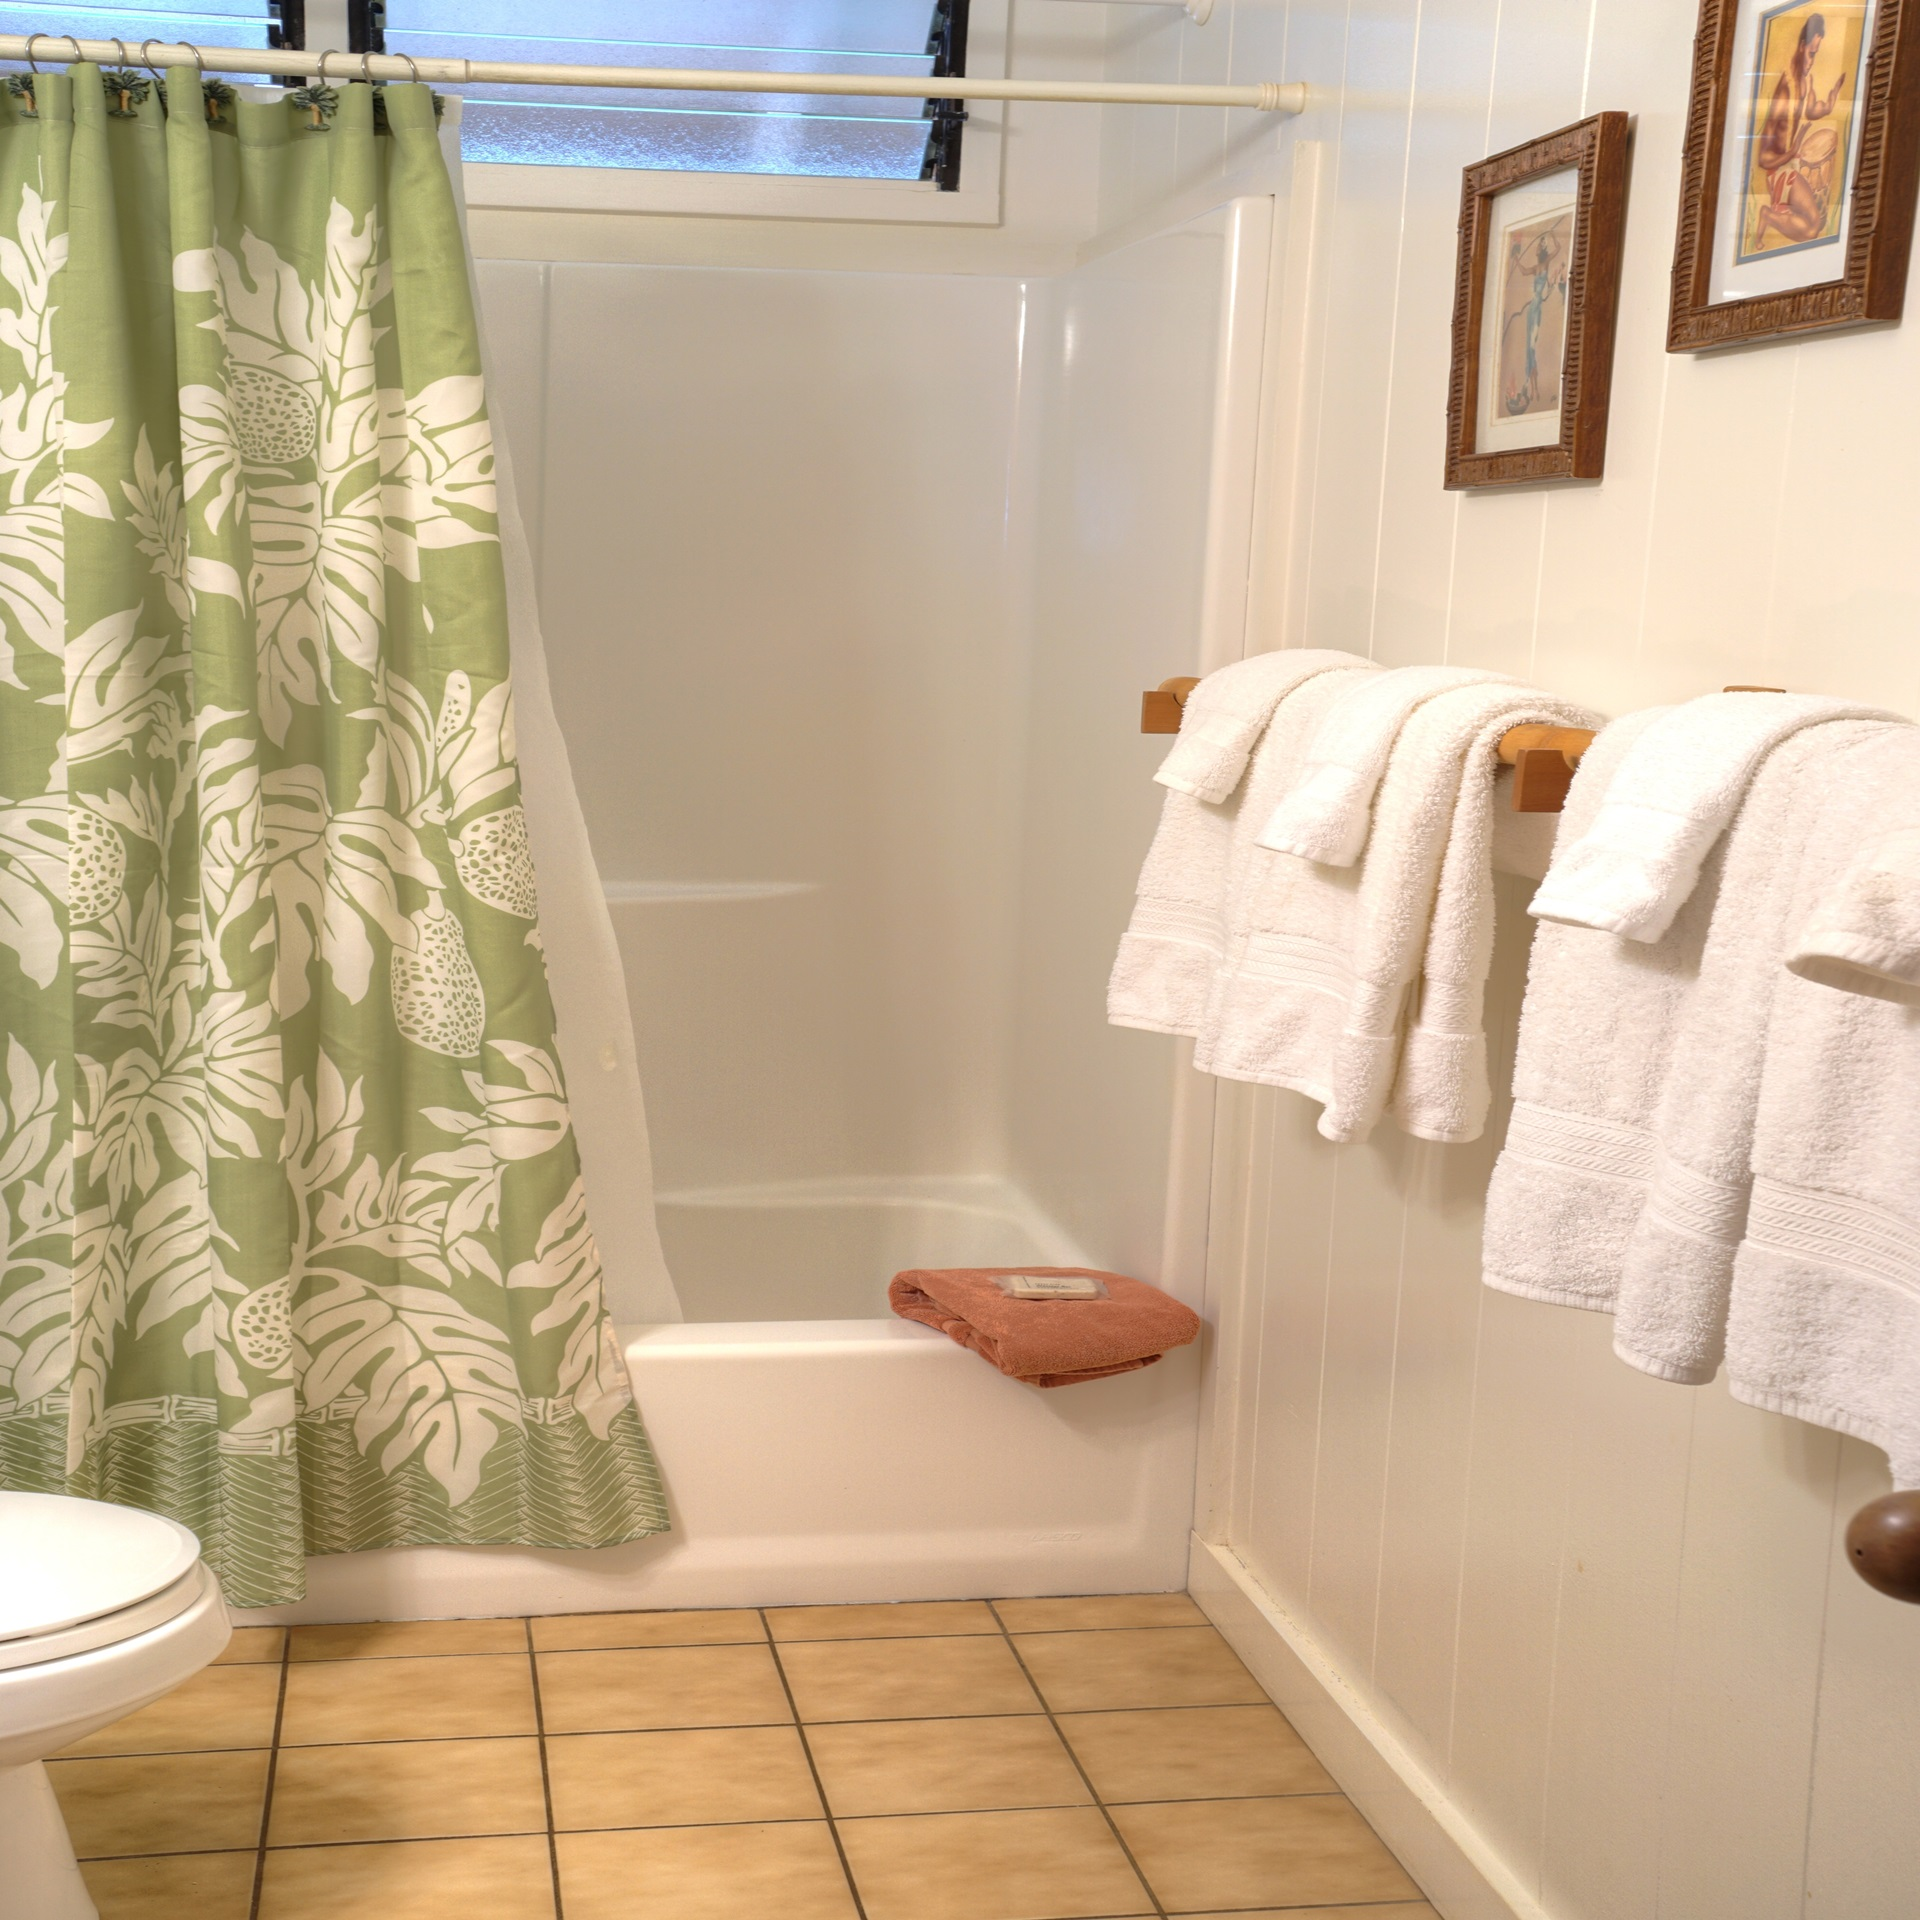 Guest bath in hall